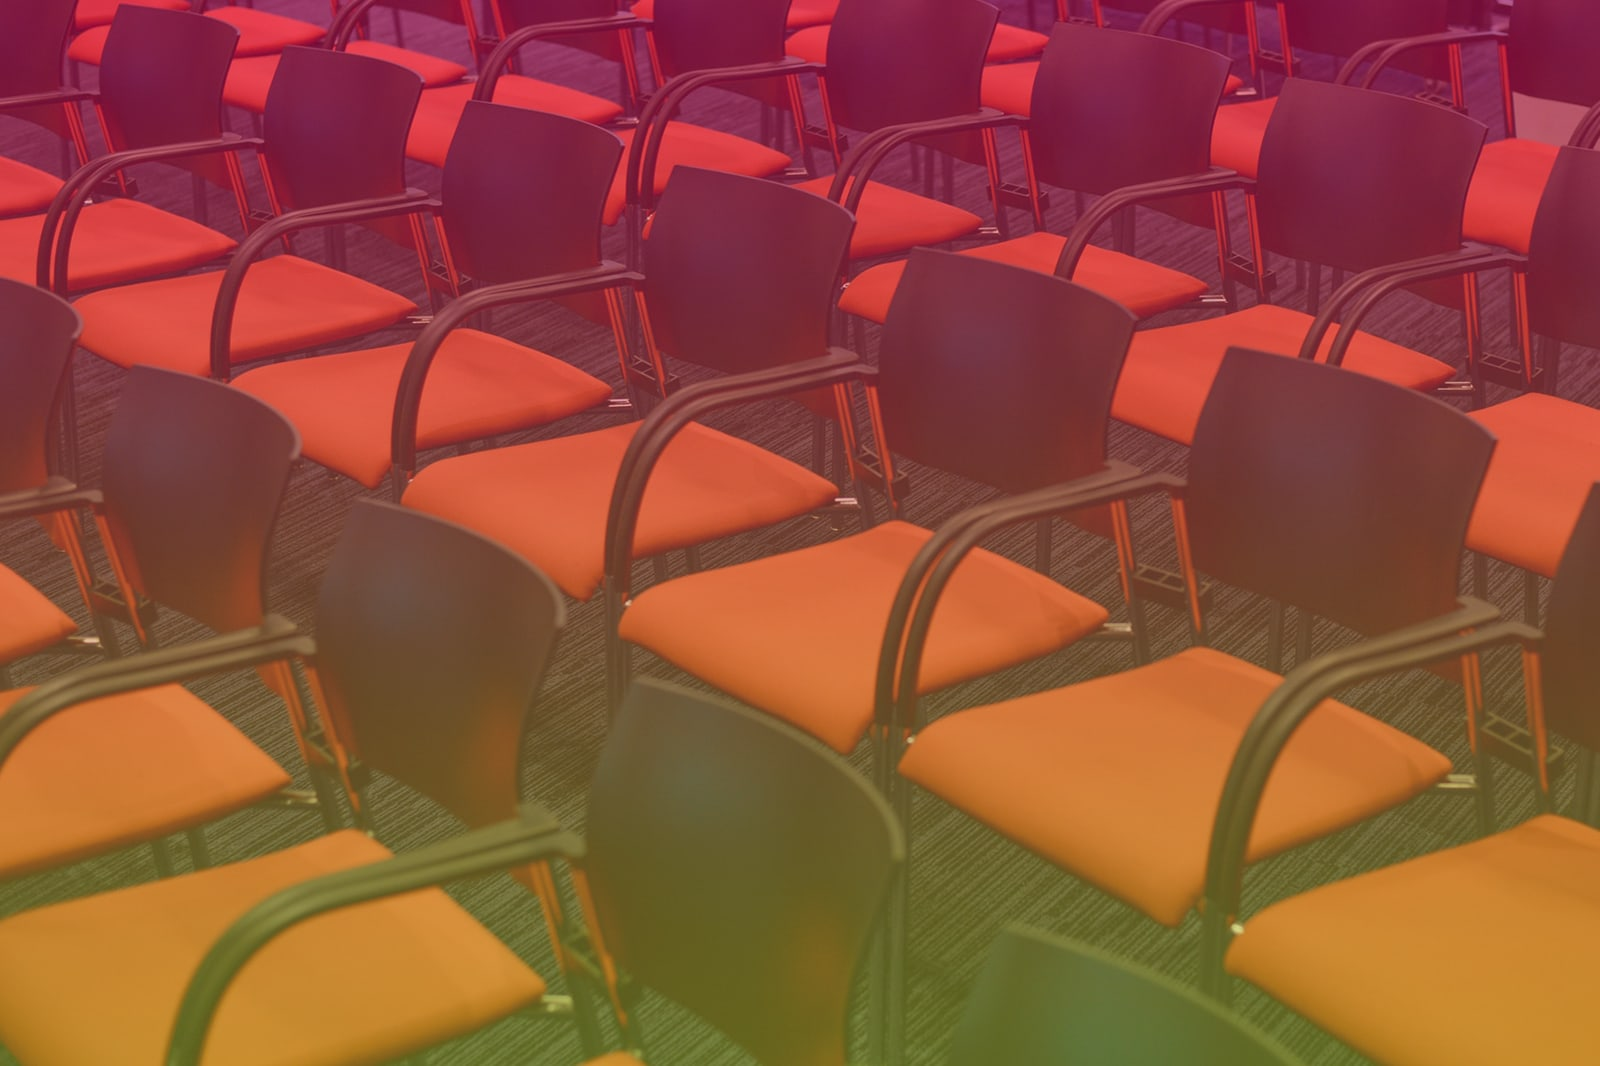 17 ways to get the most out of a professional conference